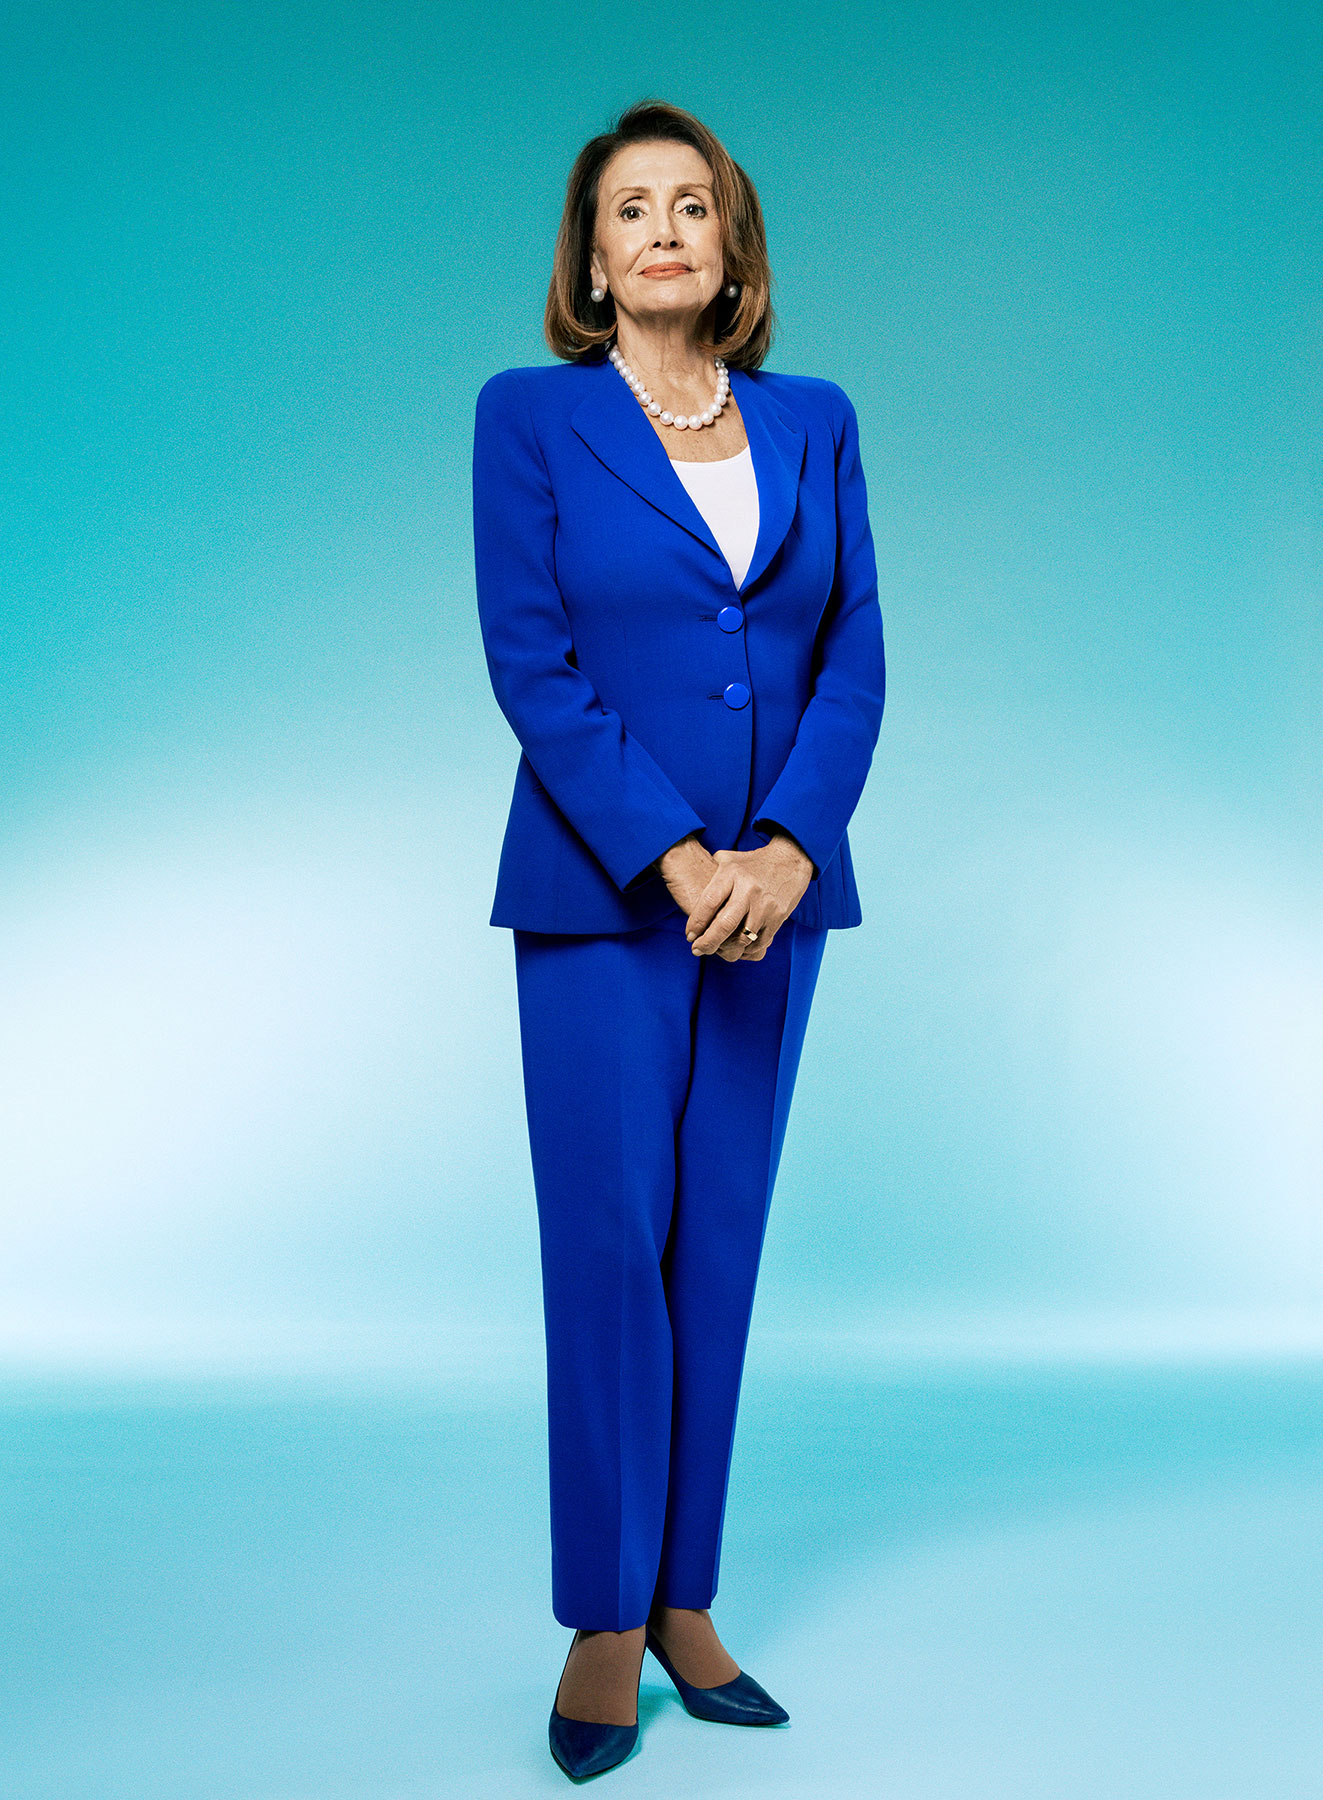 U.S. Speaker of the House Nancy Pelosi